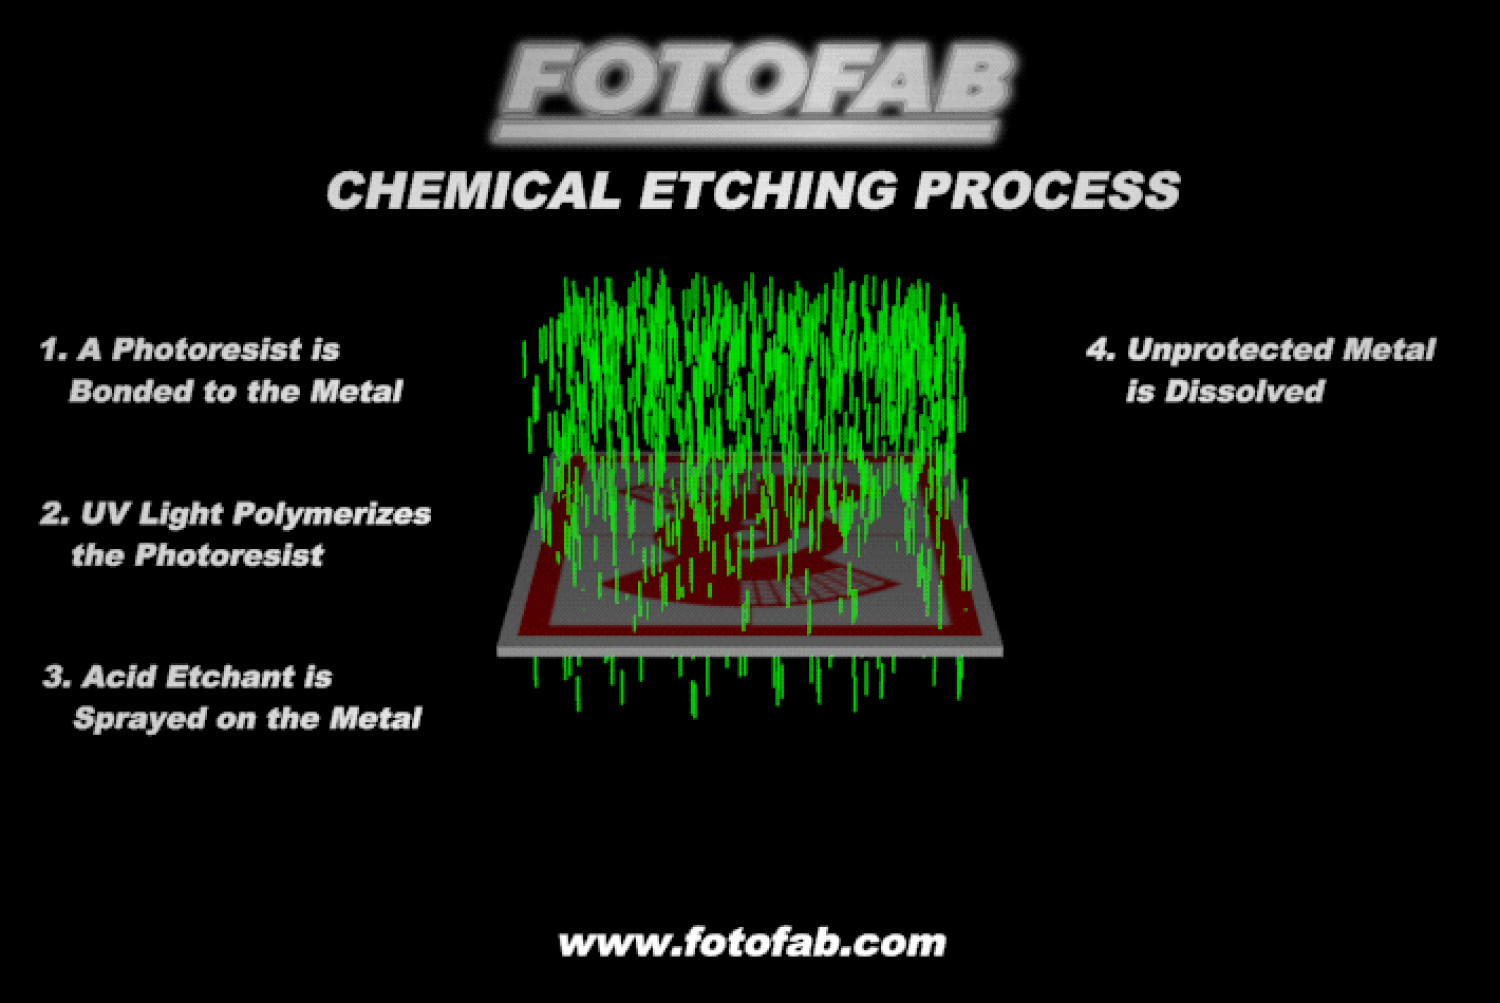 Chemical Etching Process Infographic